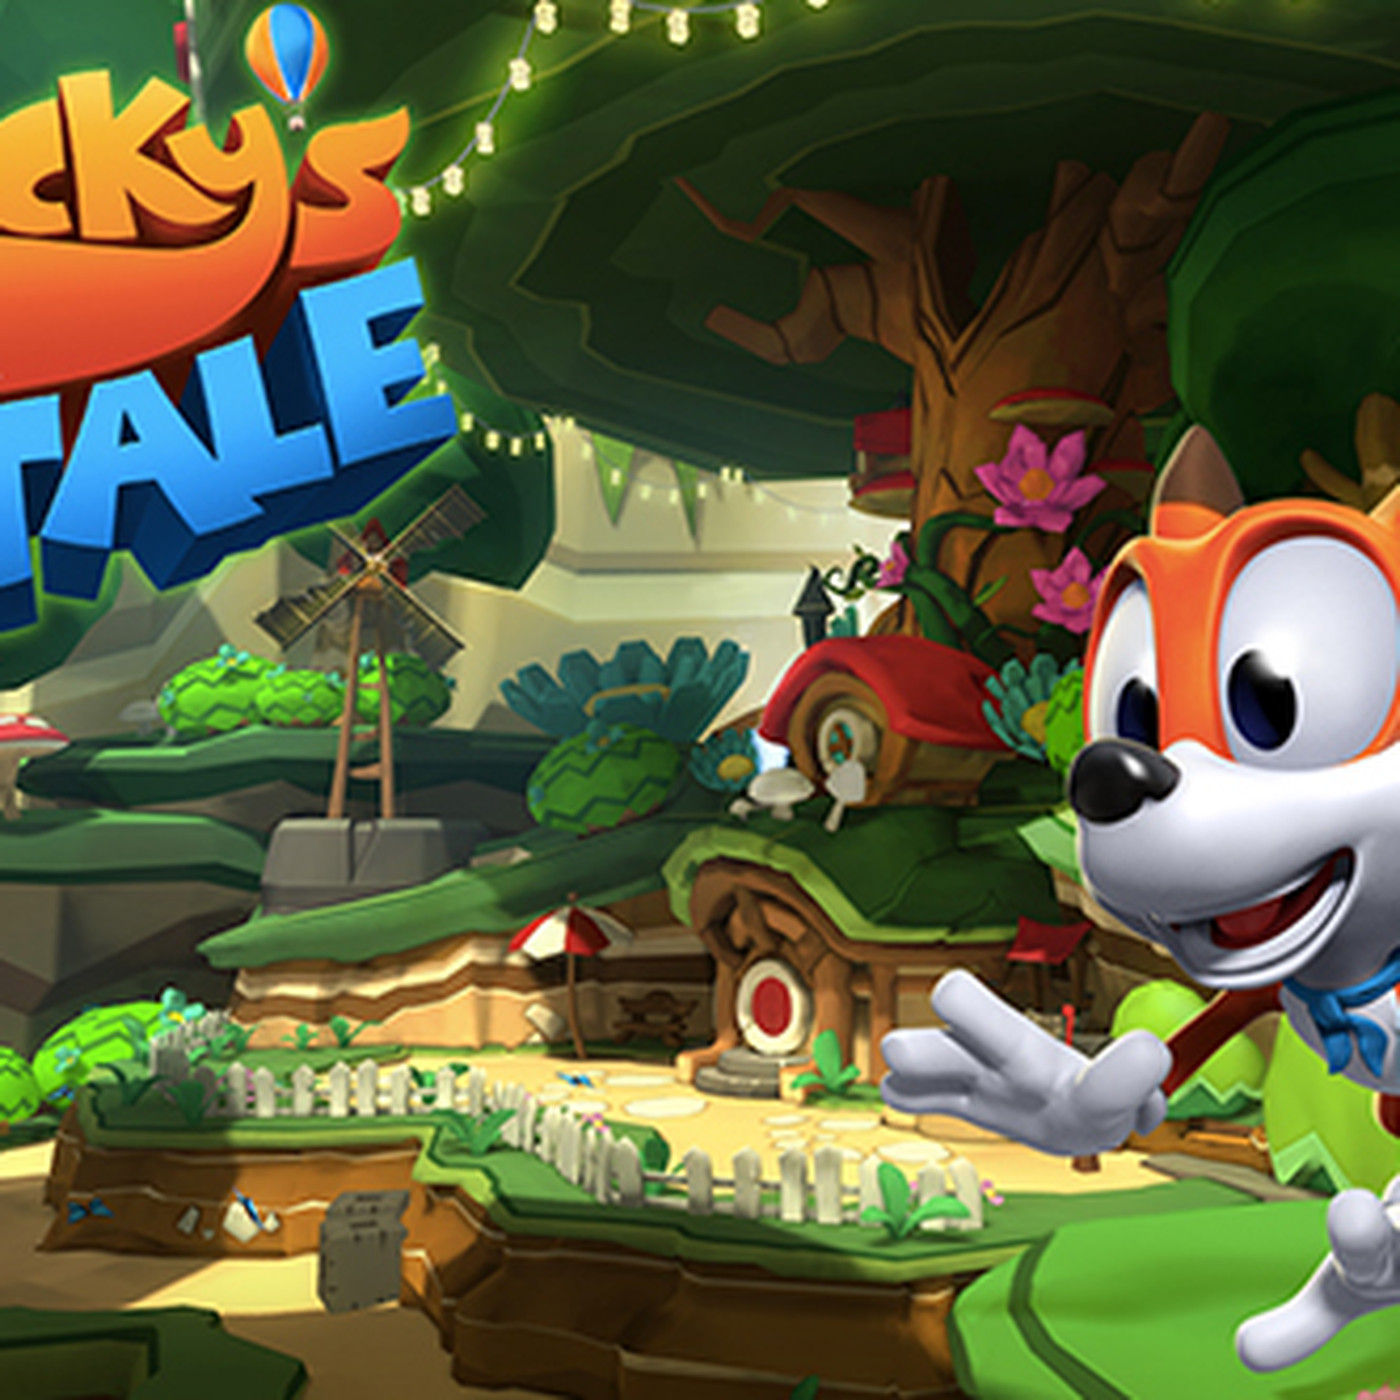 lucky s tale vr s answer to mario 64 to be included free with retail oculus rift polygon retail oculus rift